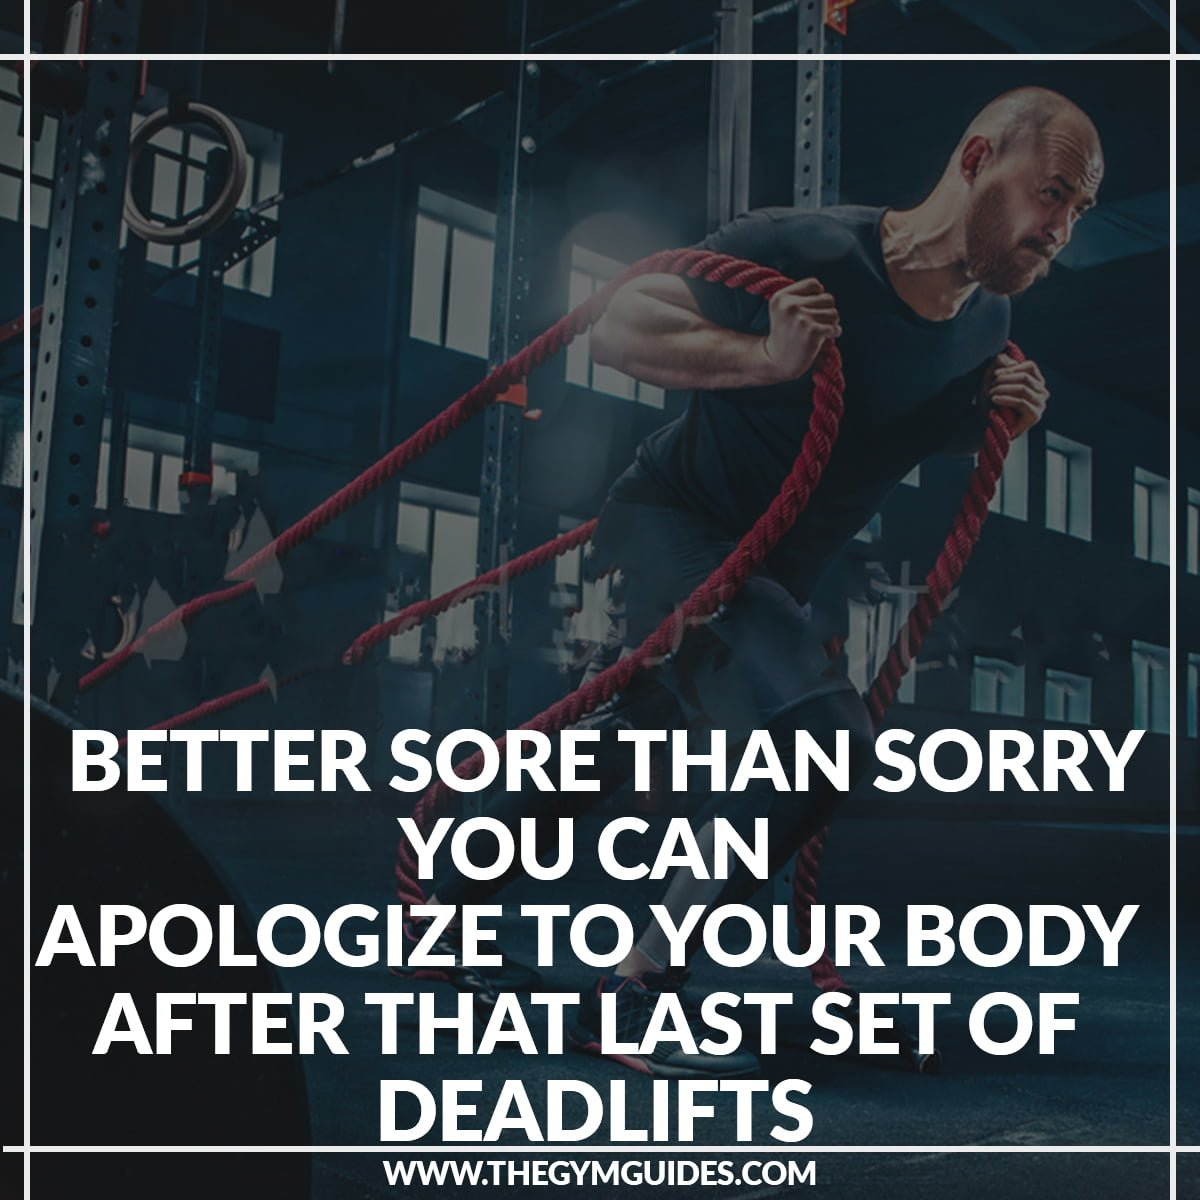 Better SORE than SORRY – you can apologize to your body after that last set of deadlifts